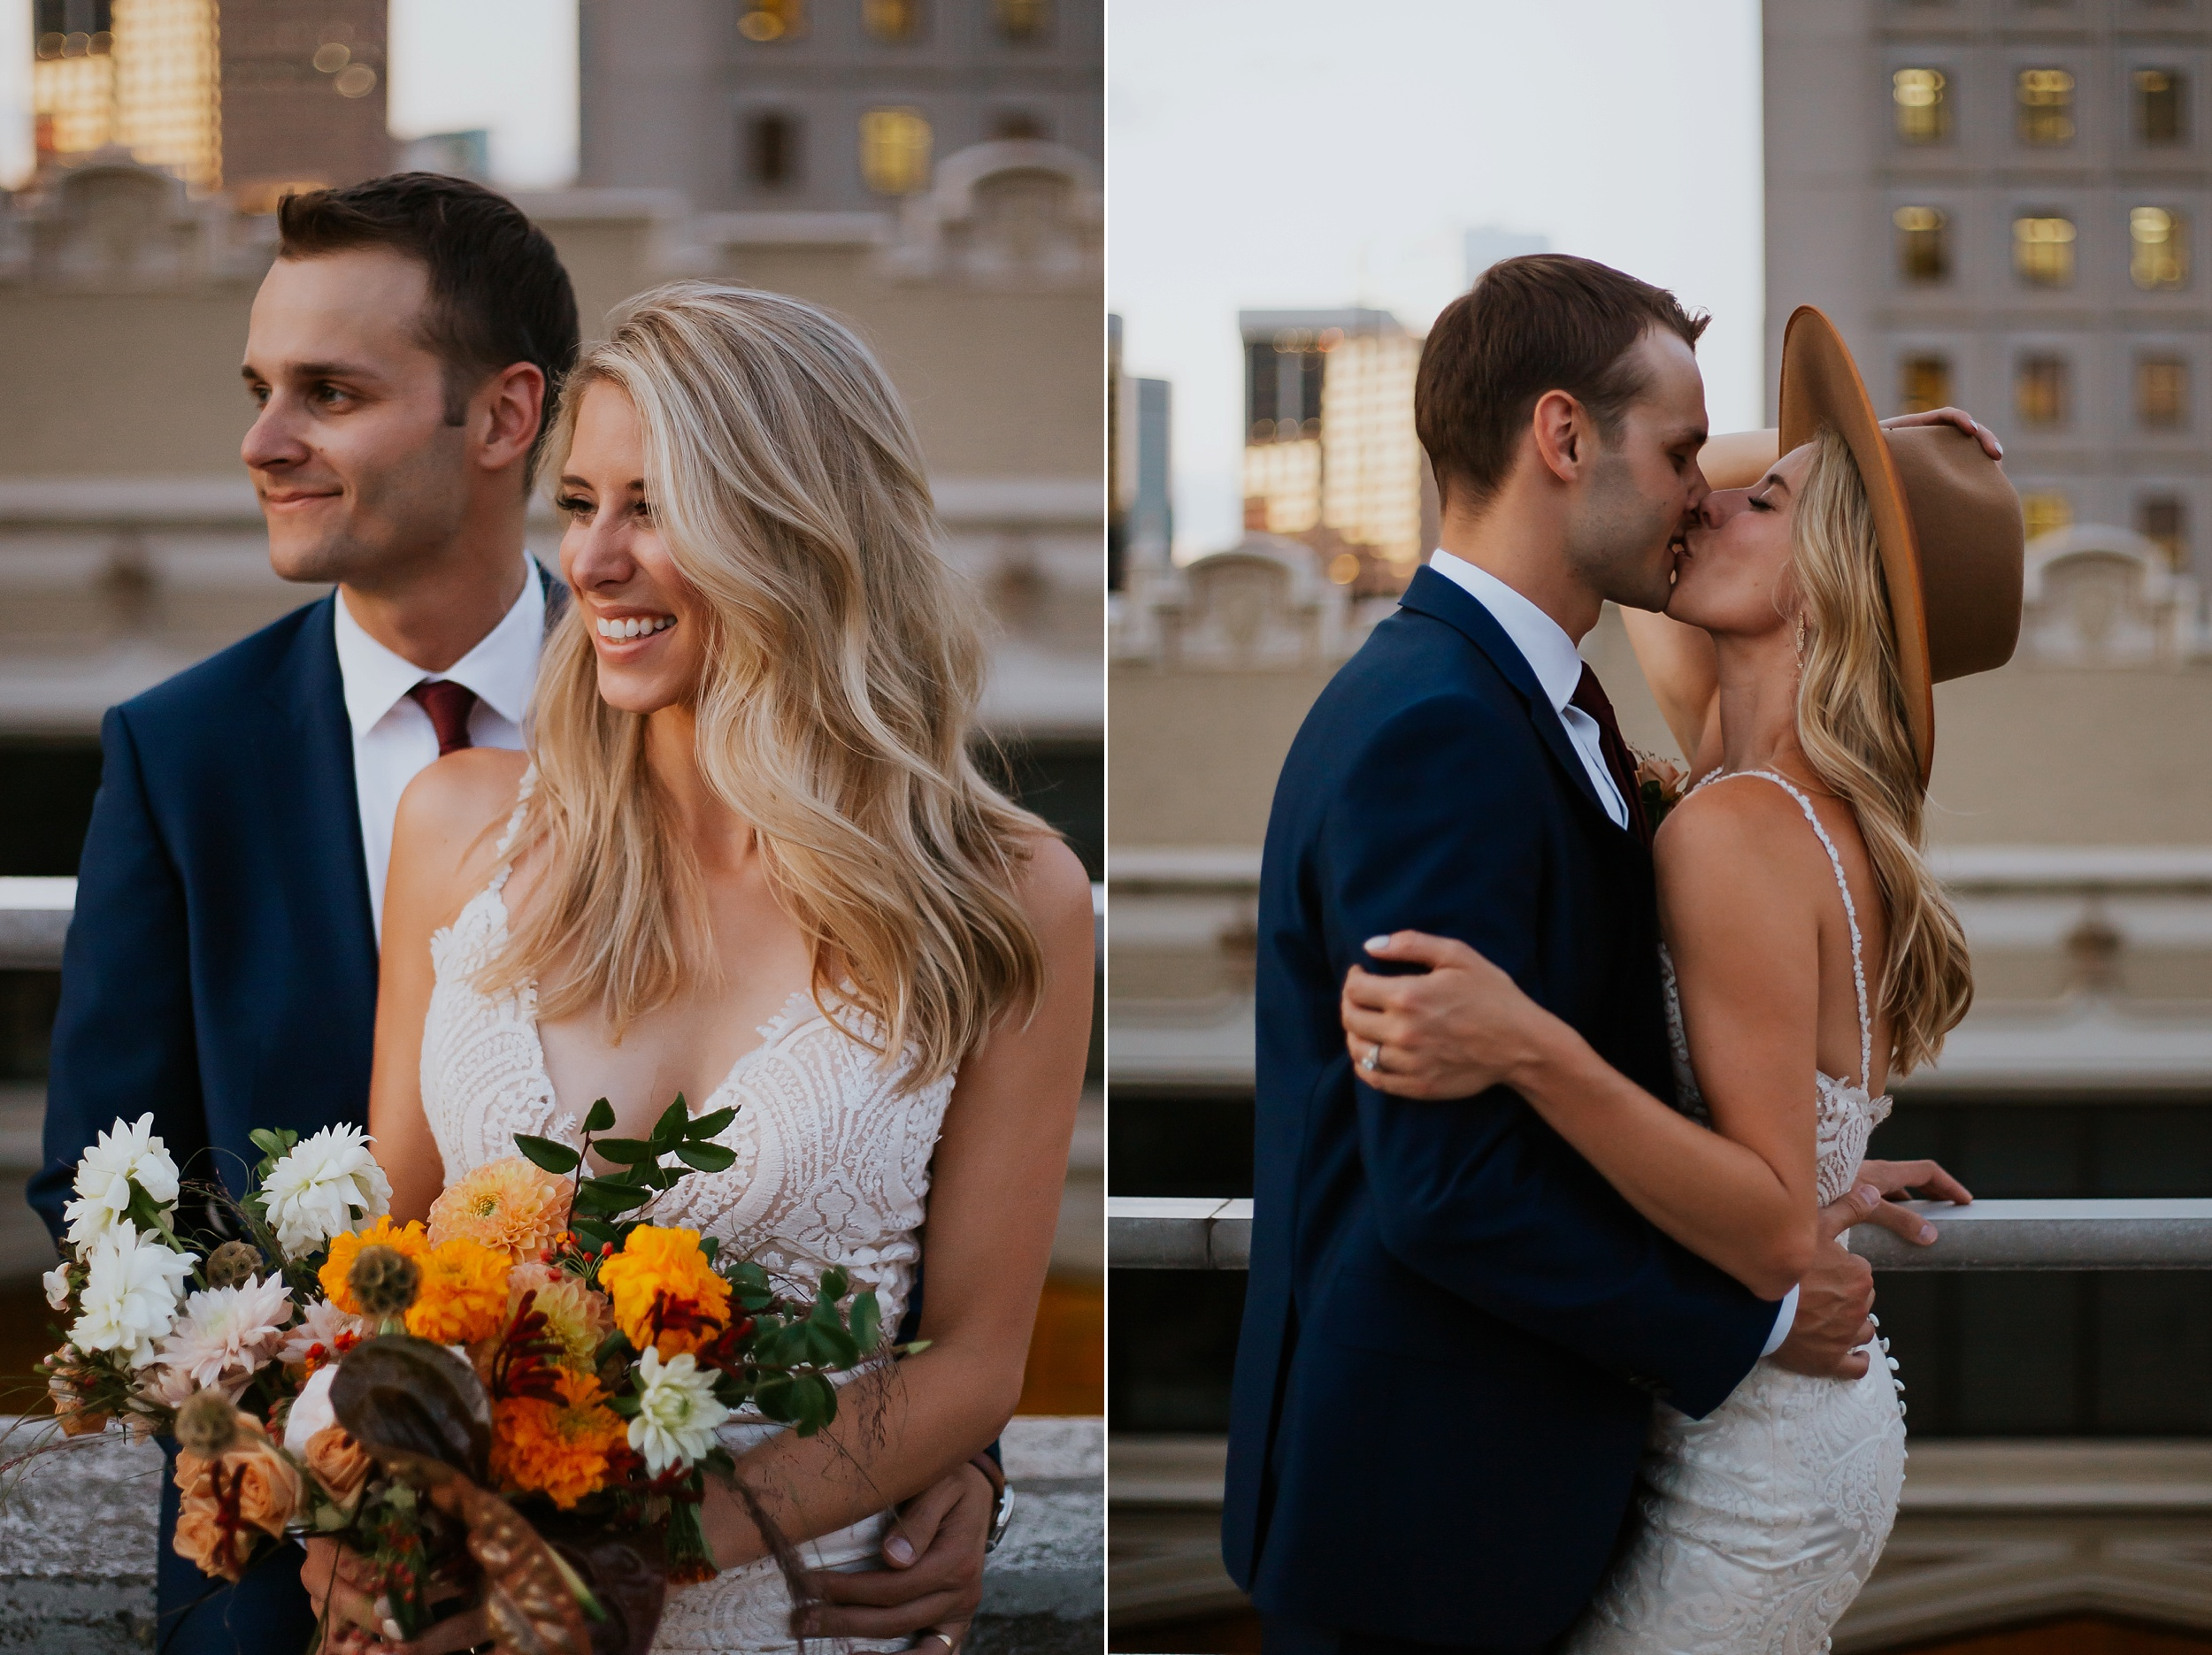 DowntownDenver_Colorado_Elopement_Anniversary_Session_Urban_Edit-46.jpg